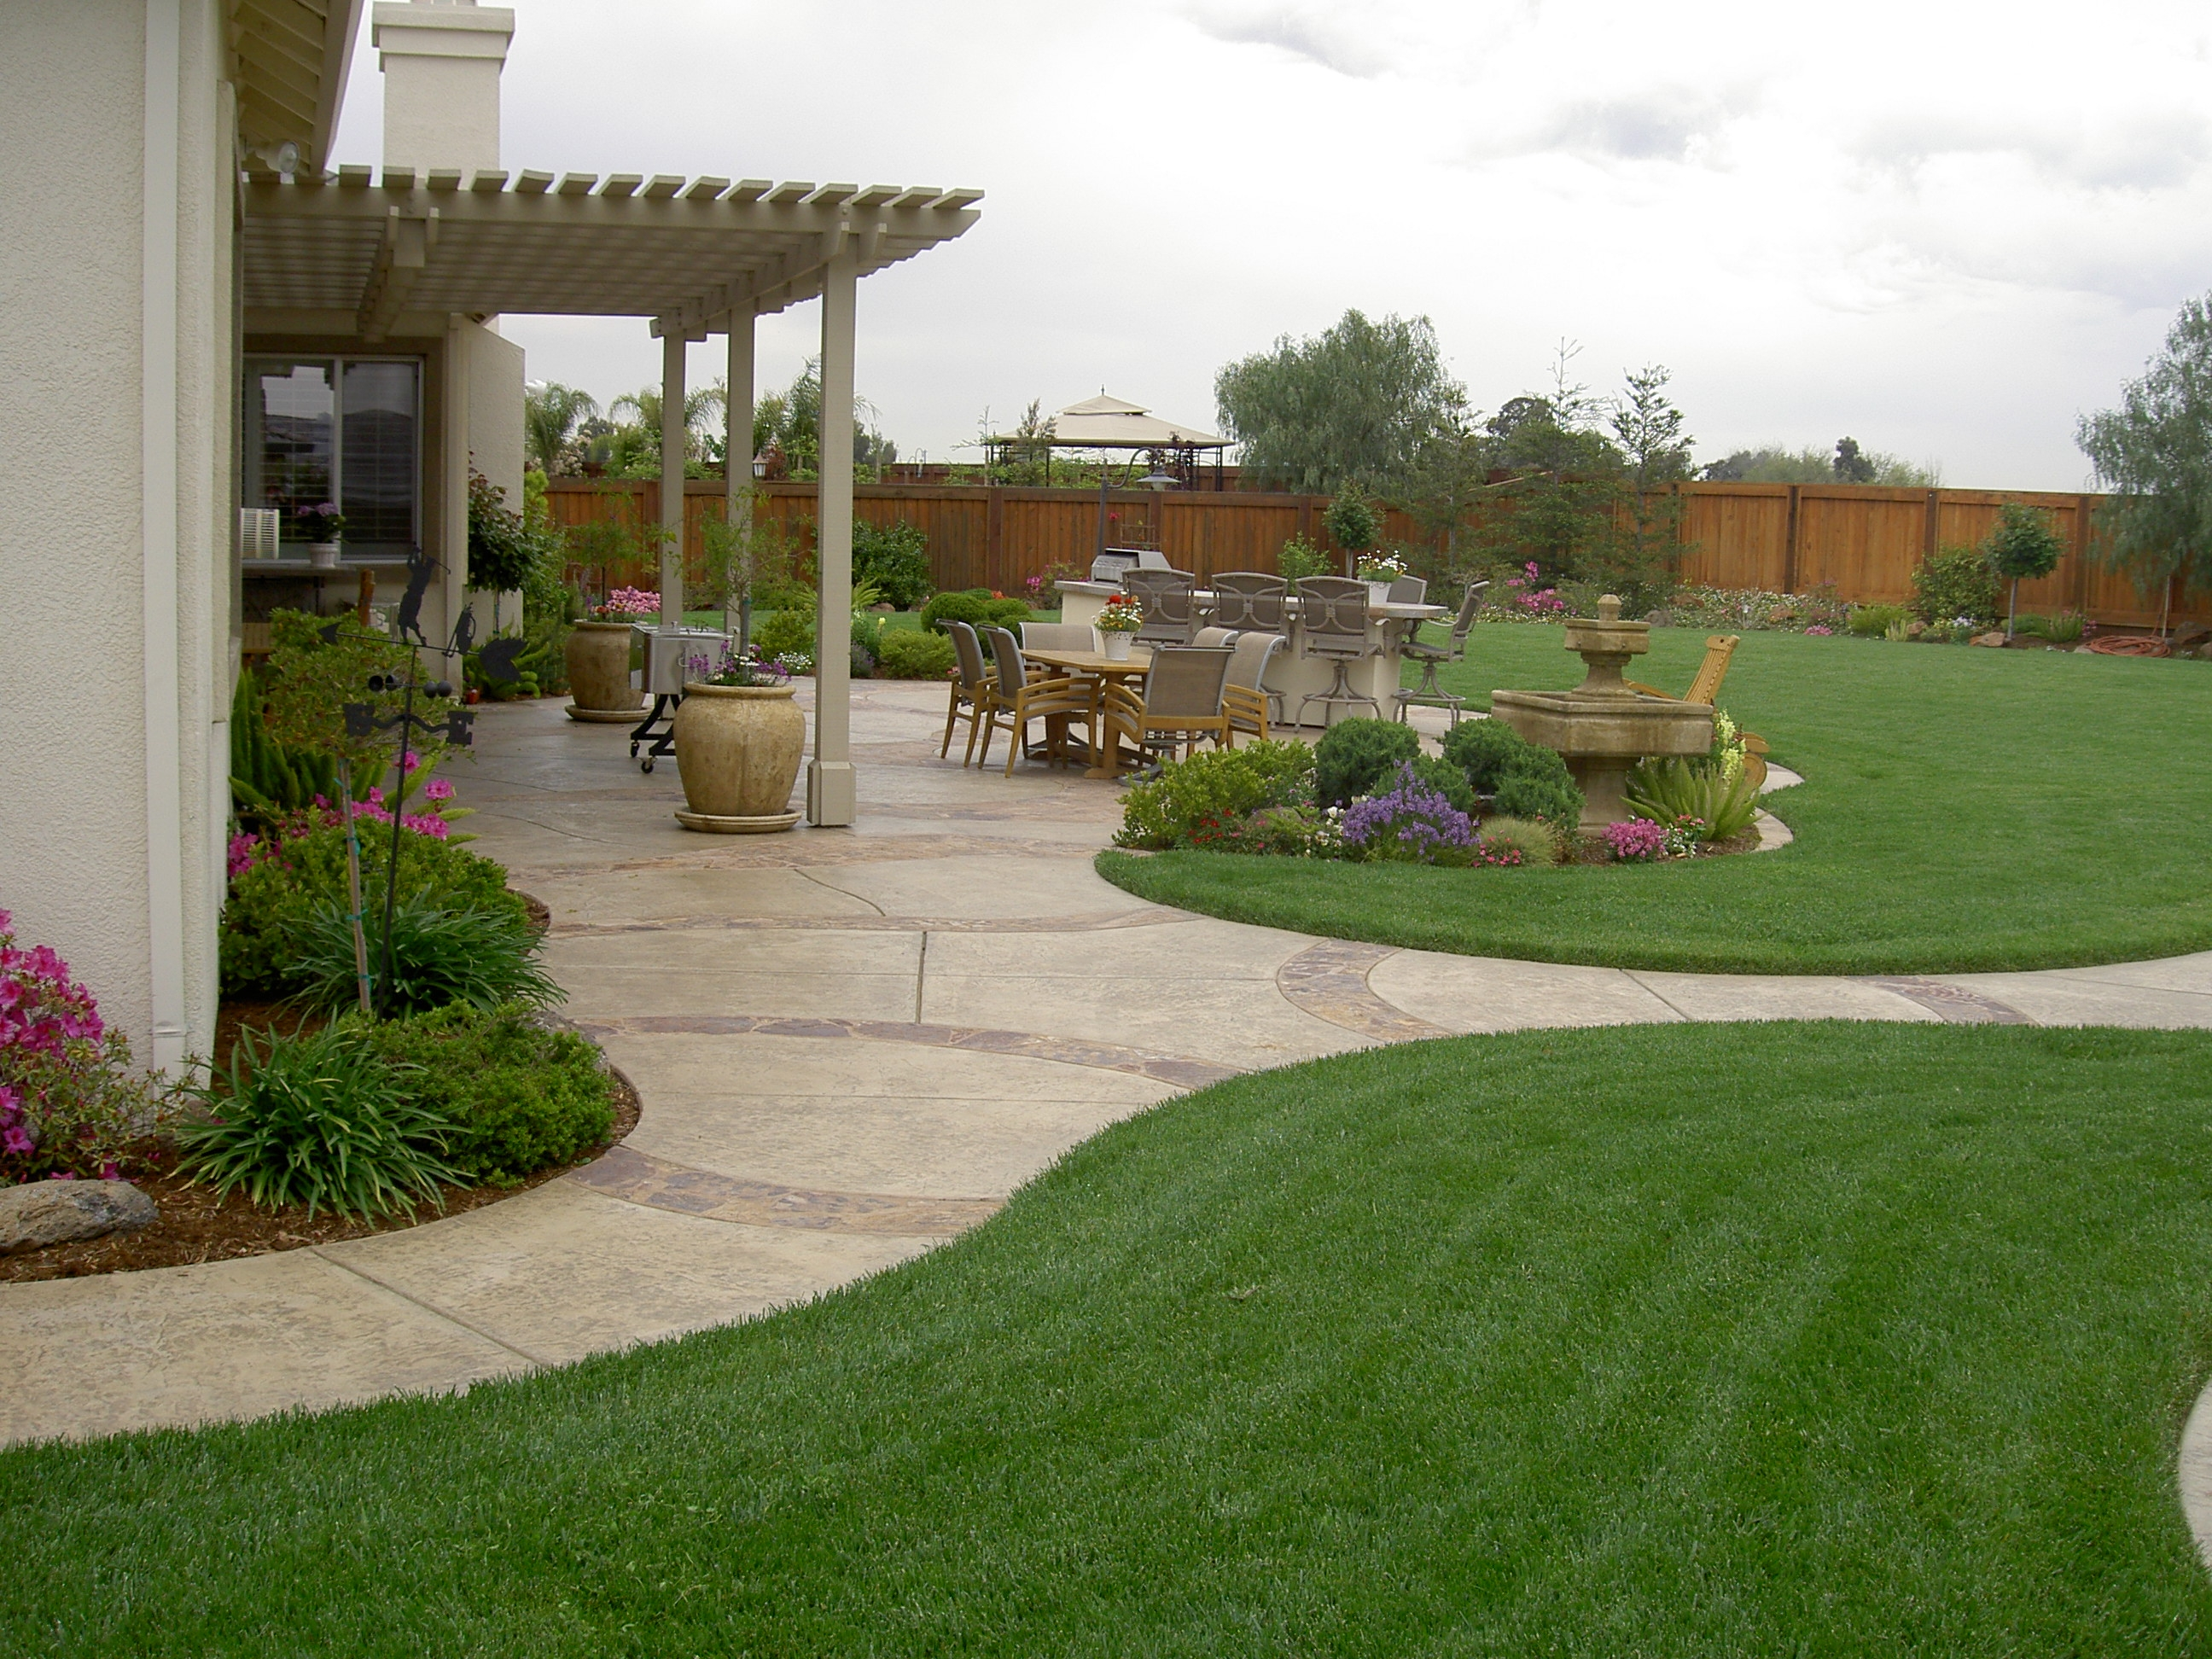 Backyard Paver Designs 6 Paver Backyard Ideas Backyard Paver Designs